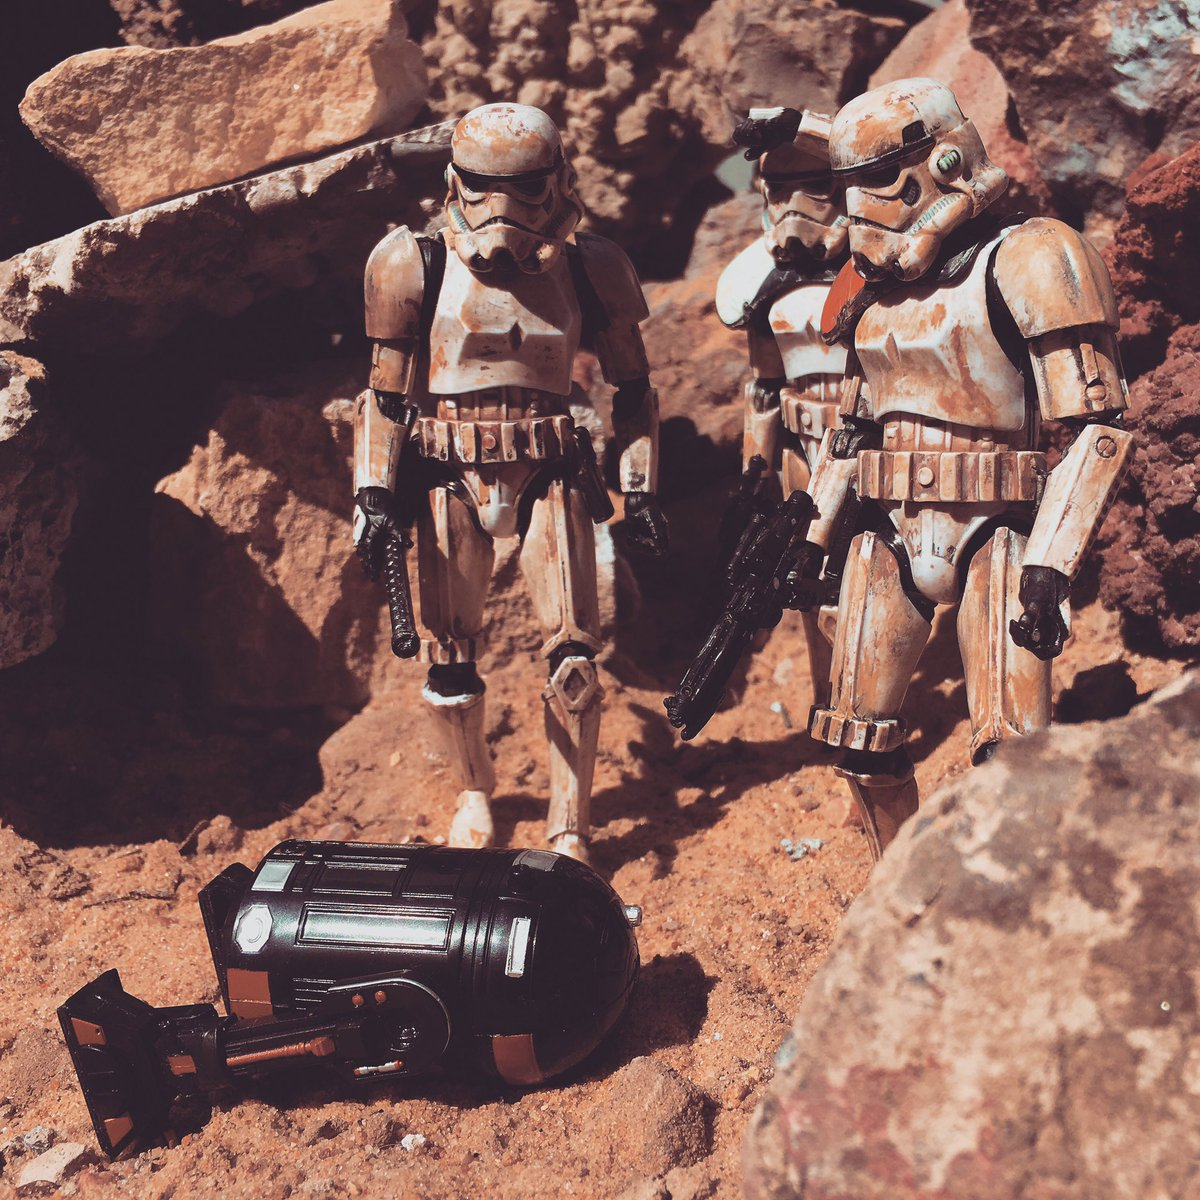 Just some #Trooper shots from the archives #ActionFigure #StarWars #Stormtrooper #HanSoloMovie #Solo @Kwehttamm @Genxwing @nigel_kirton<br>http://pic.twitter.com/VGBH8kfUvC